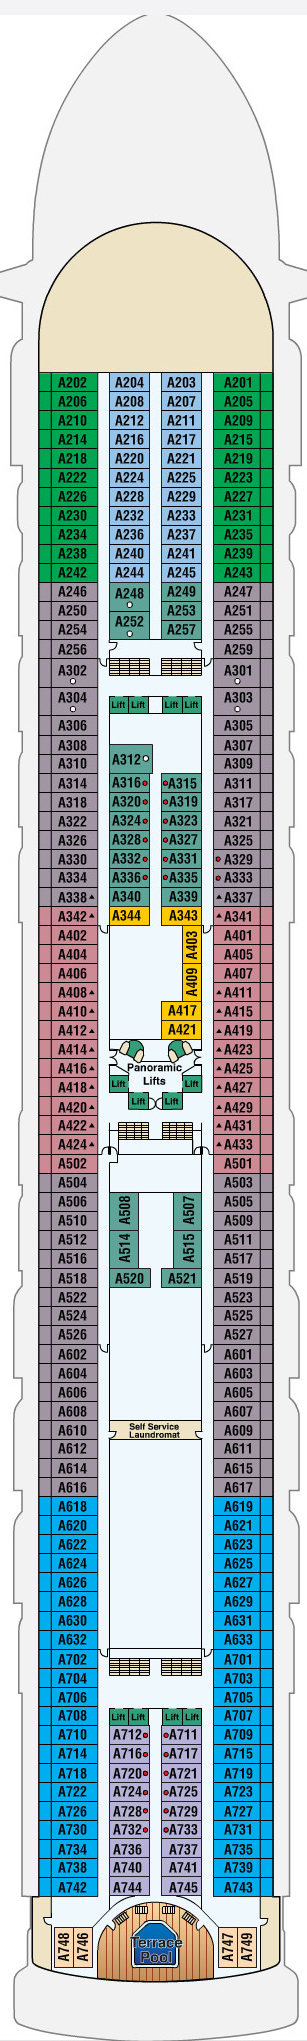 Golden Princess Aloha Deck 12 layout